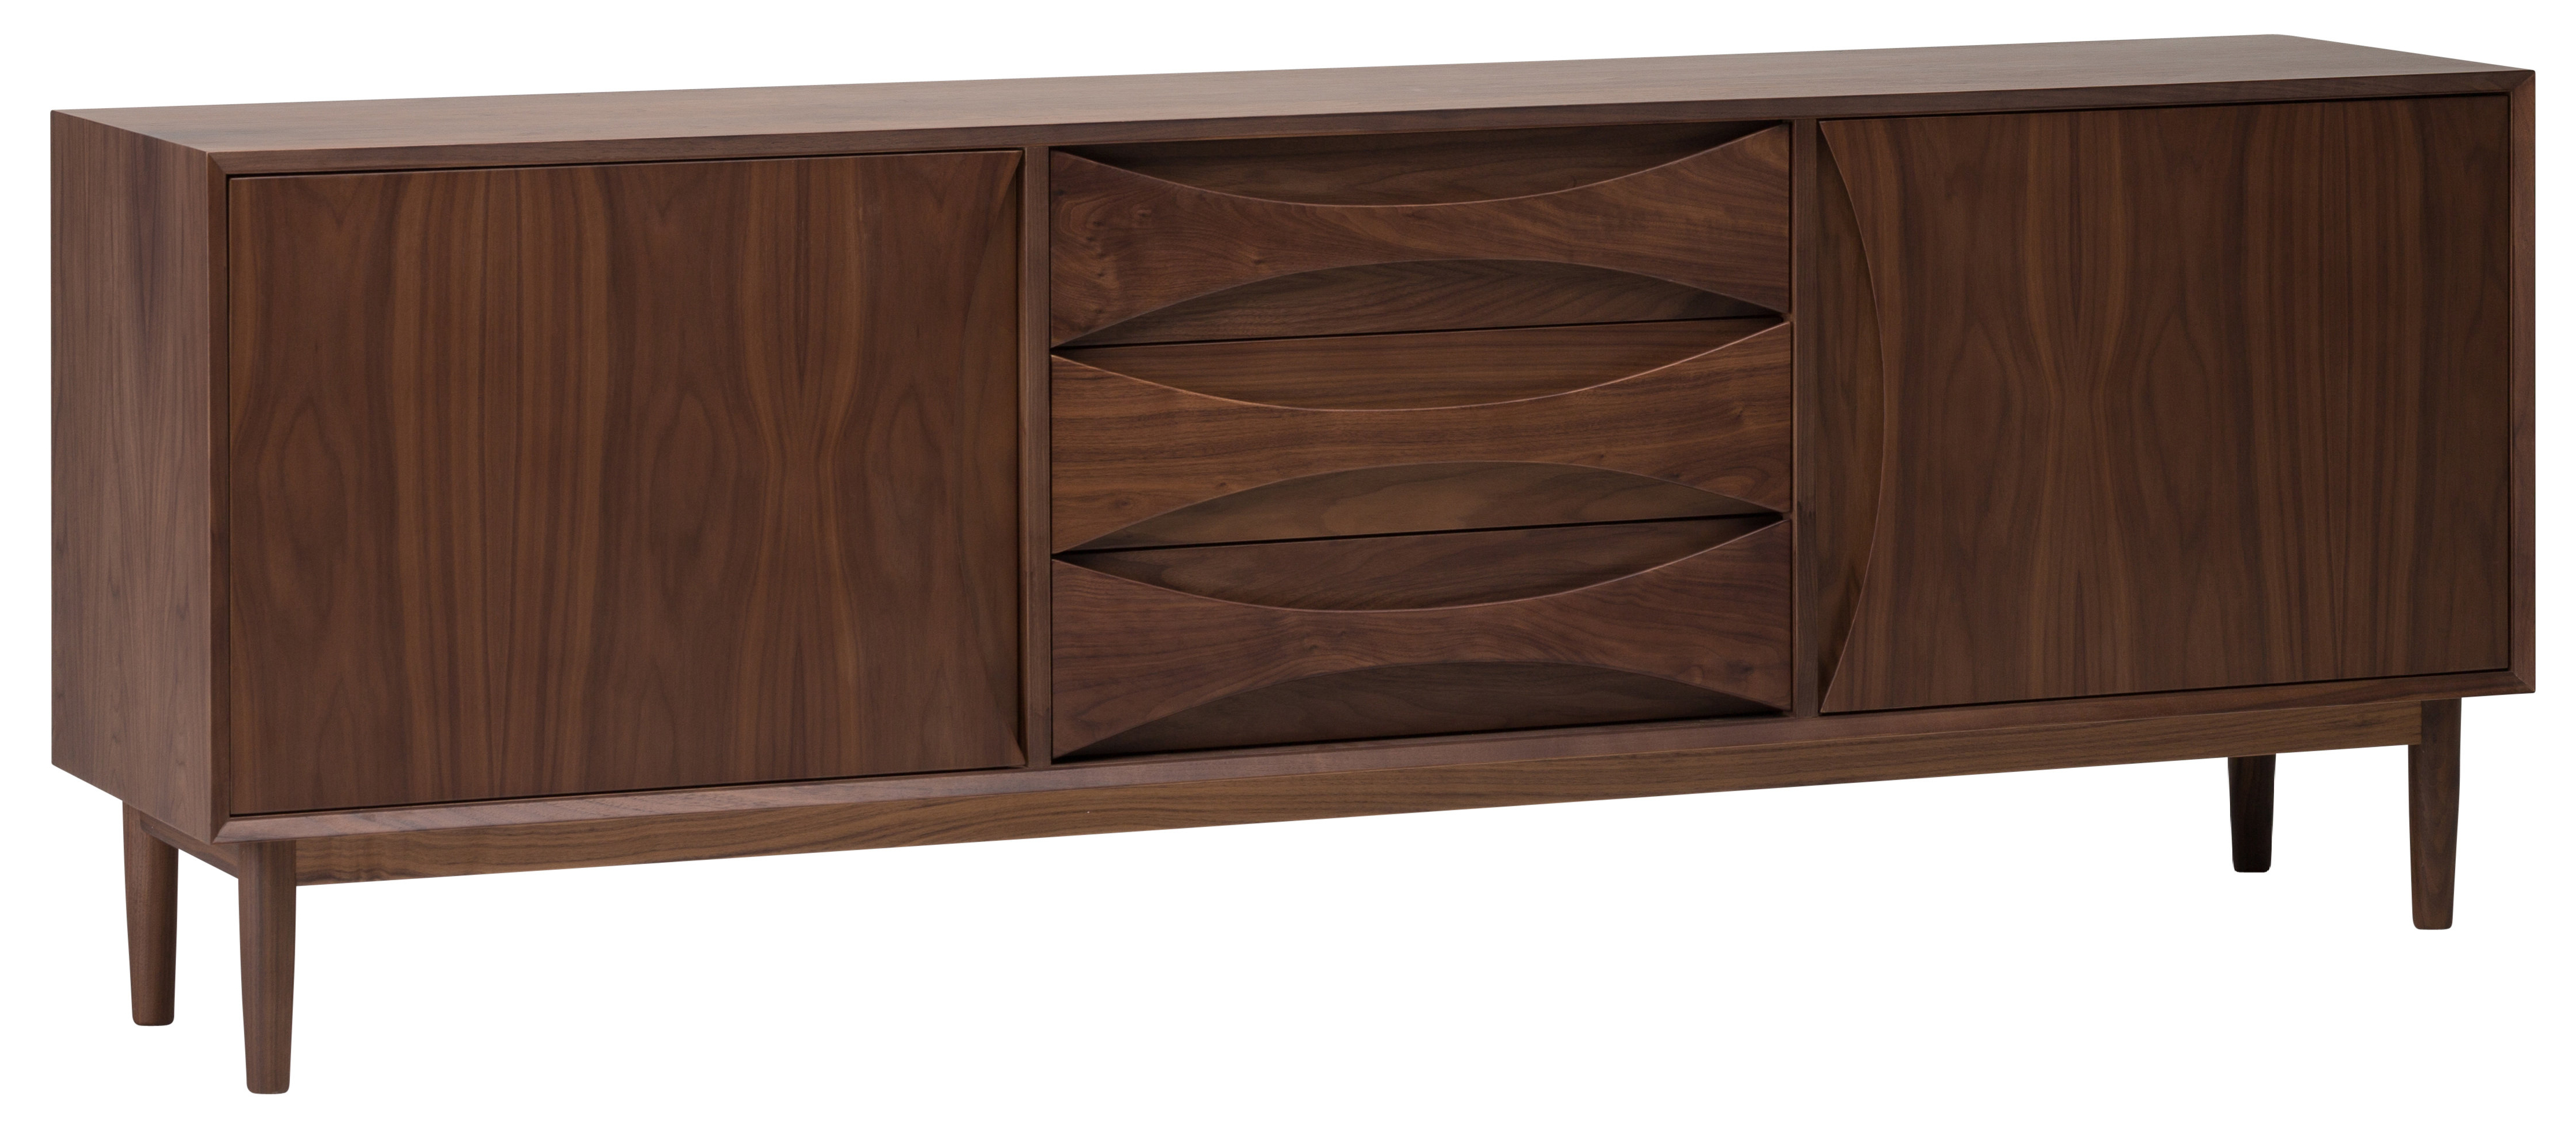 Cromaghs Sideboard Pertaining To Emiliano Sideboards (View 3 of 20)